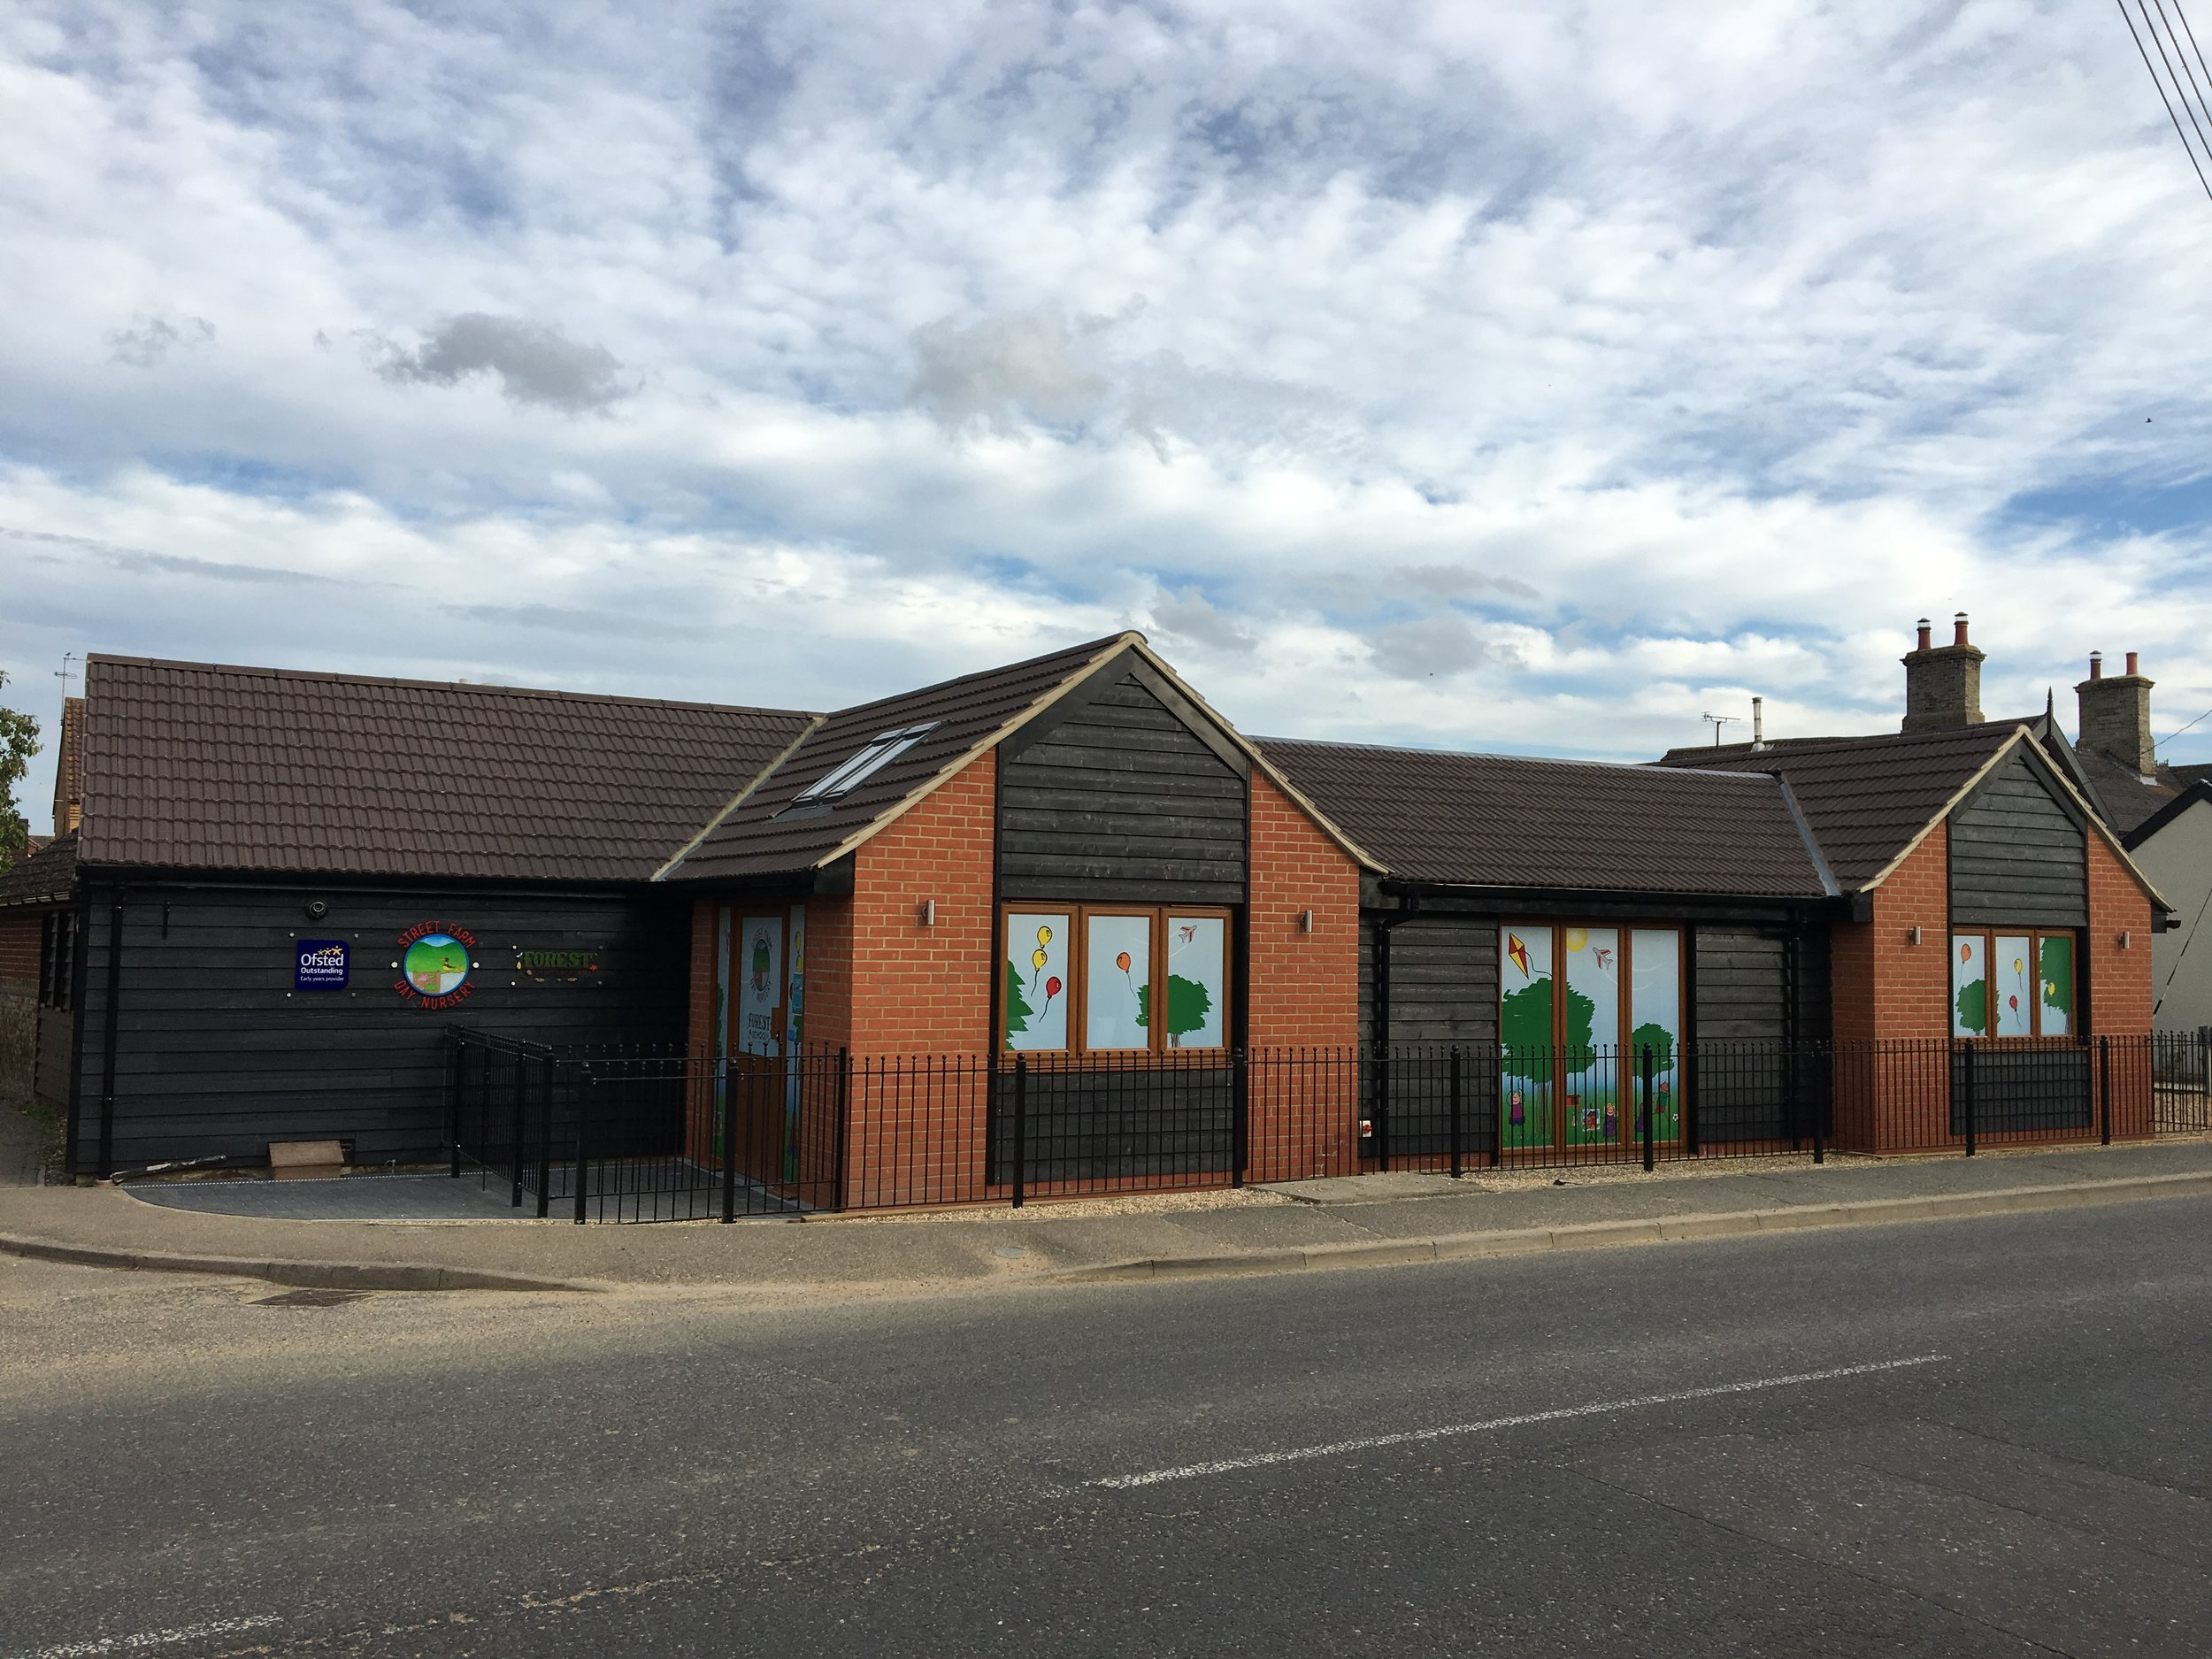 Patrick Allen & Associates are pleased to announce the project of a single storey extension at the Street Farm Day Nursery in Elmswell has been successfully completed.